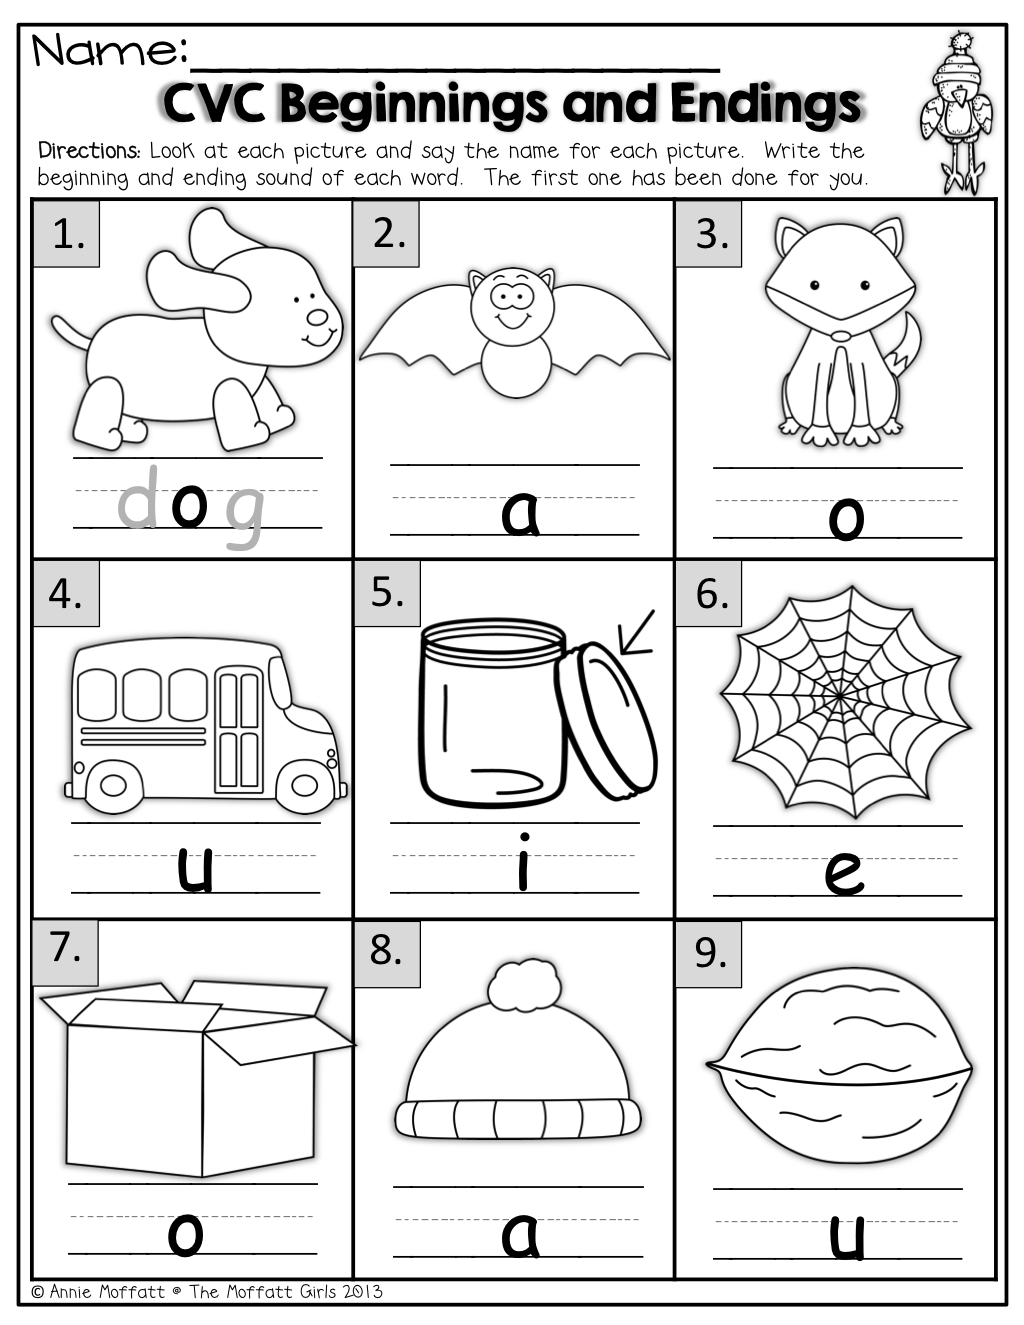 Ending Sound Worksheets For Kindergarten